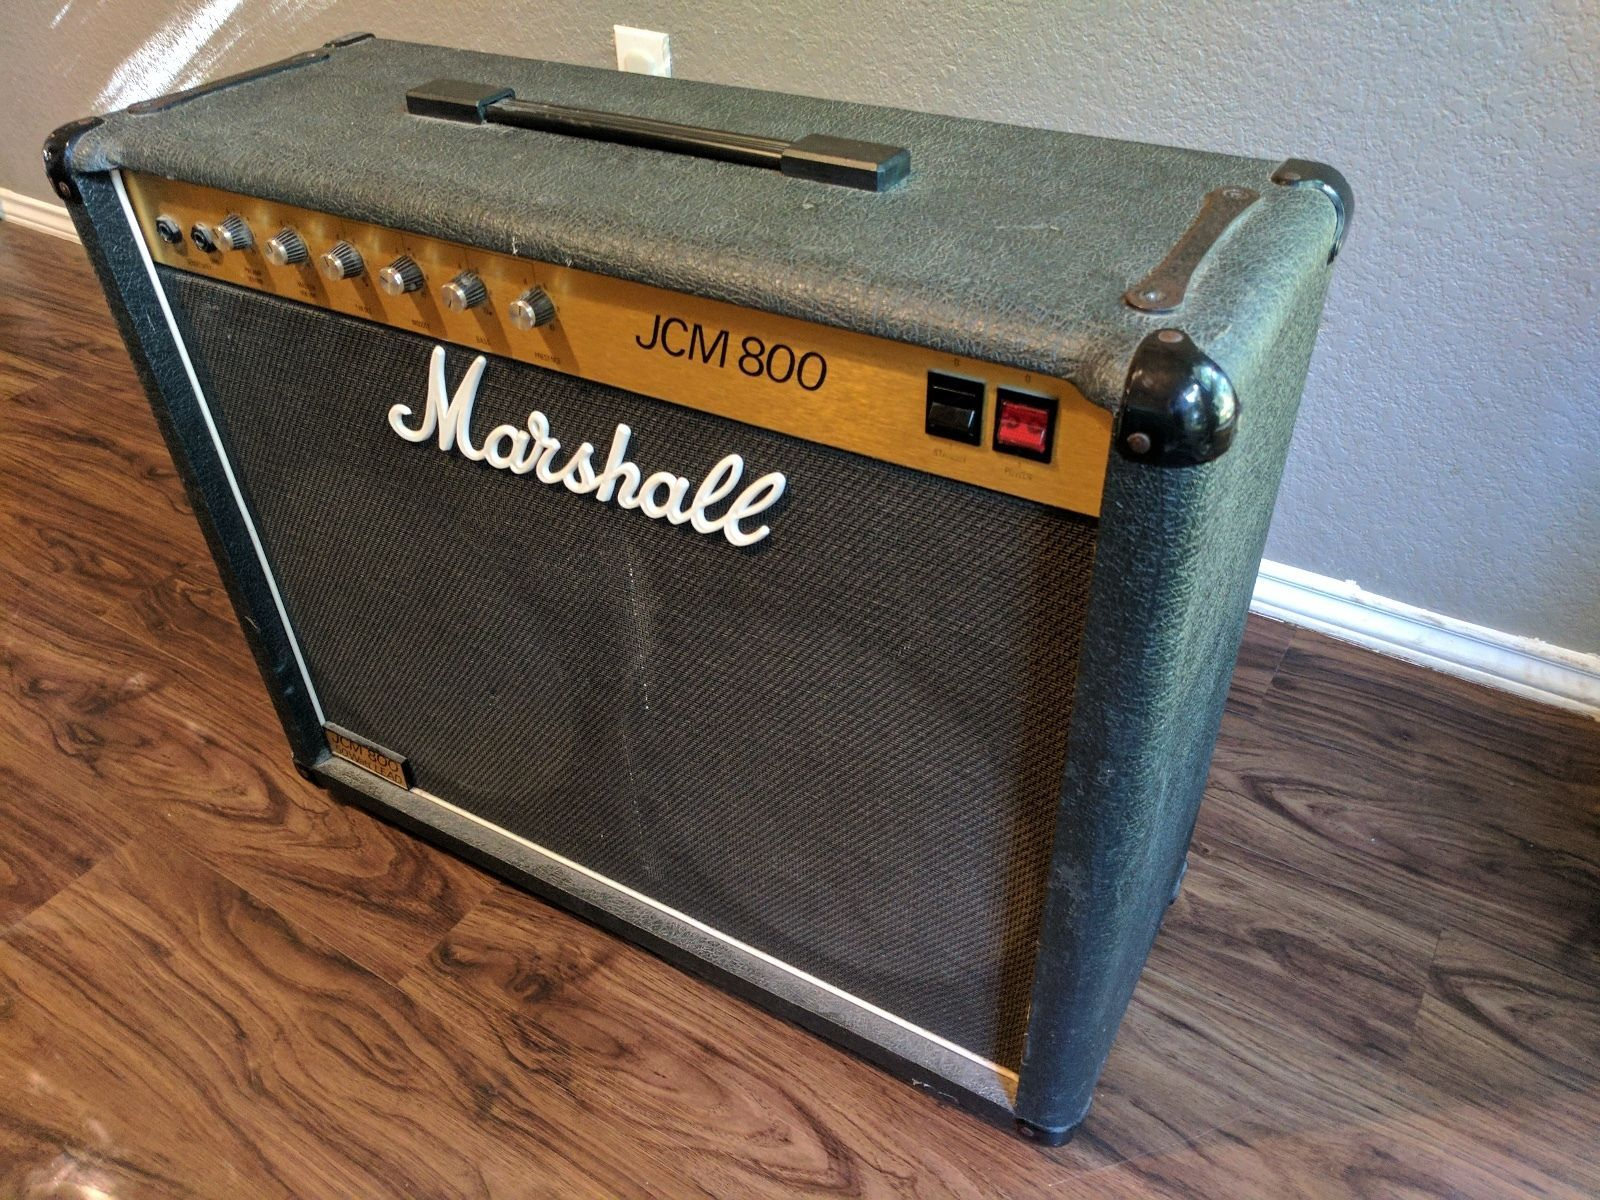 marshall 4104 jcm800 vintage 212 tube guitar amp combo used amplifier for sale common shopping. Black Bedroom Furniture Sets. Home Design Ideas